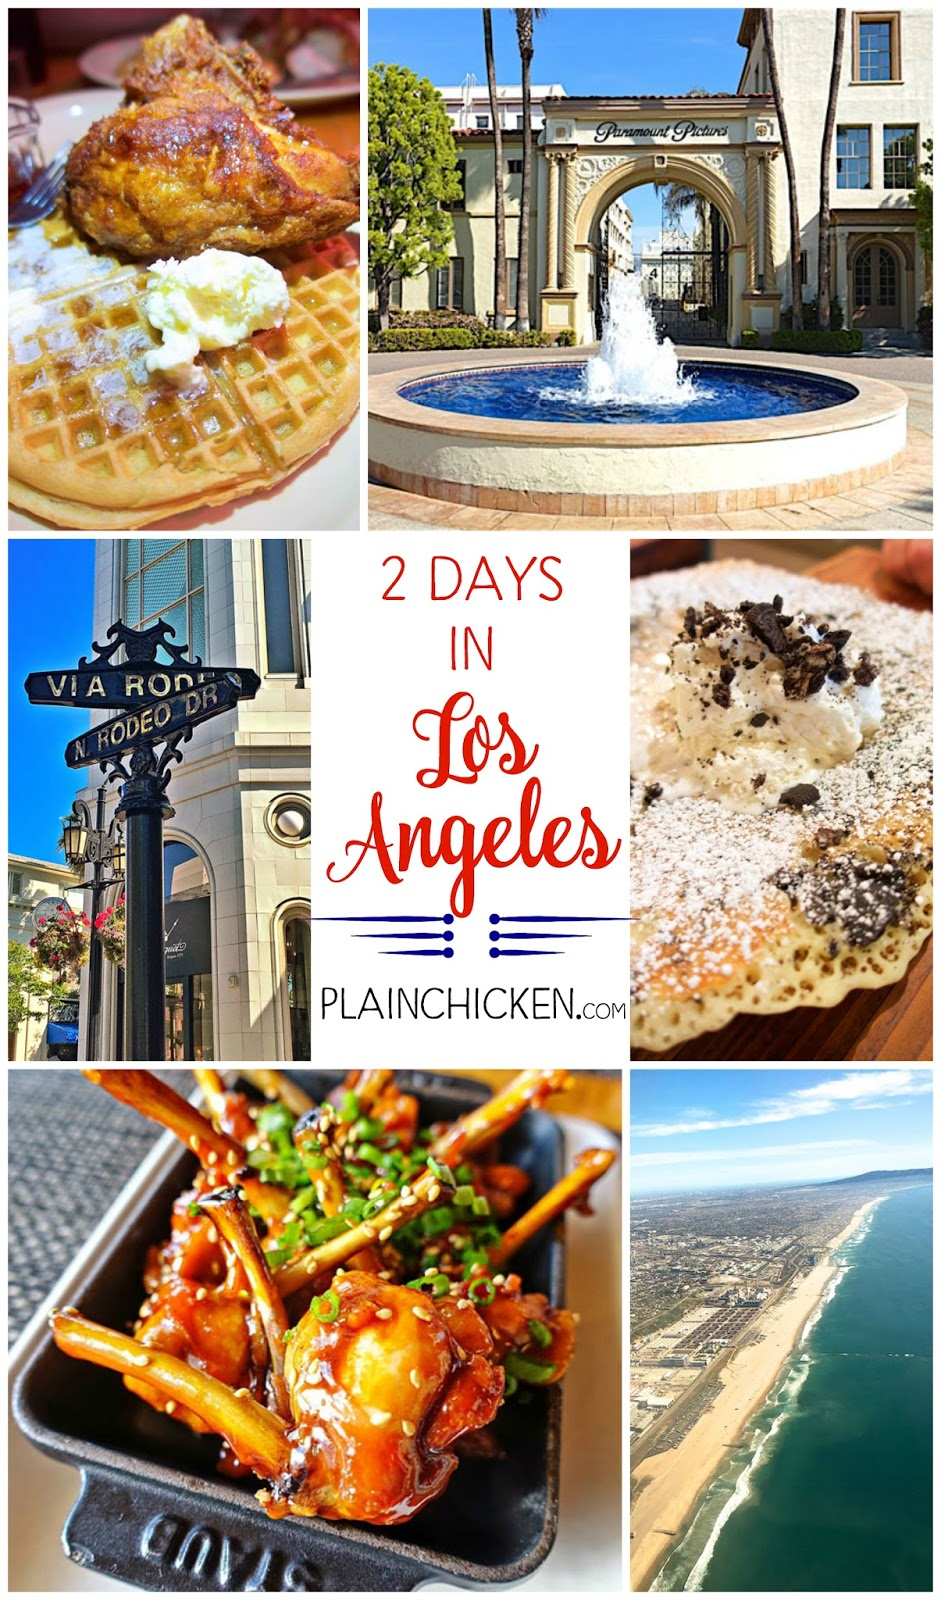 Two Days in Los Angeles - must visit attractions and restaurants! Where to see celebrities too!